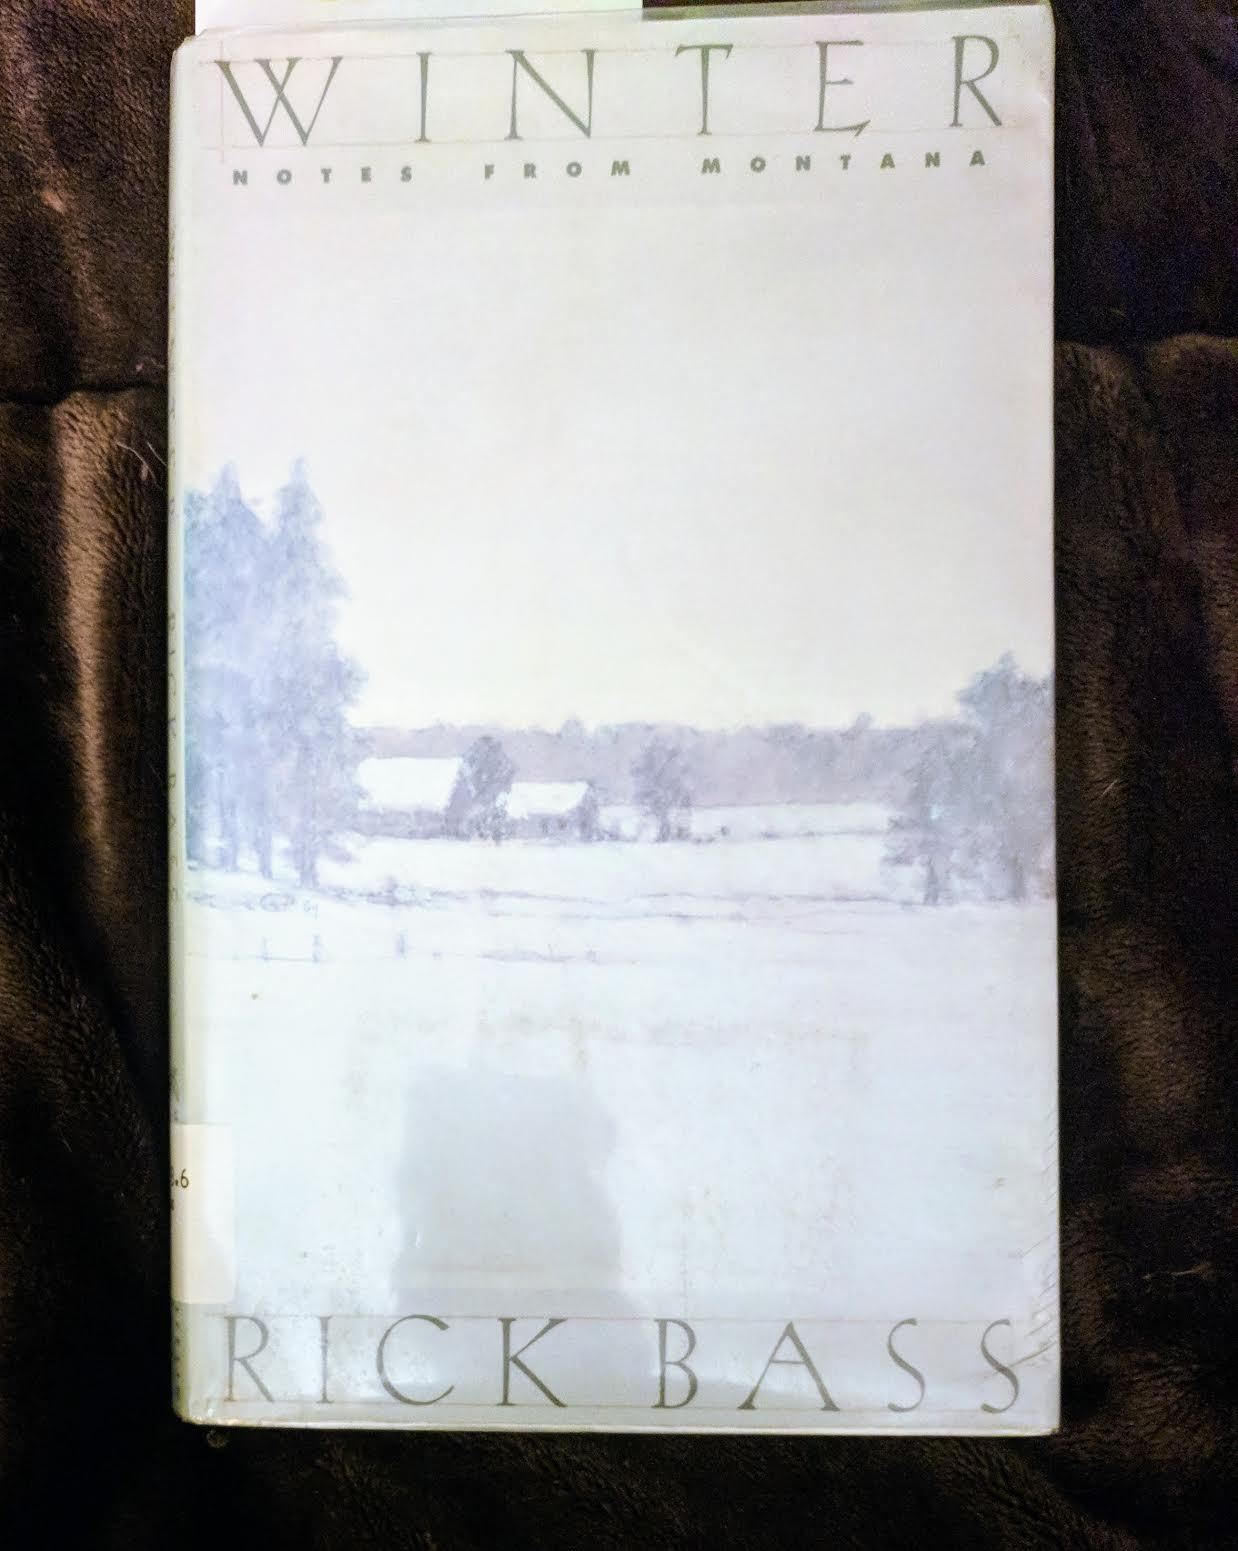 Rick BassWinter - Might be the most beautiful book I've read since Annie Dillard's An American Childhoodor maybe since Waldenor Essays Of E.B. Whiteor pretty much any other great book I can think of in which a person tells their story.